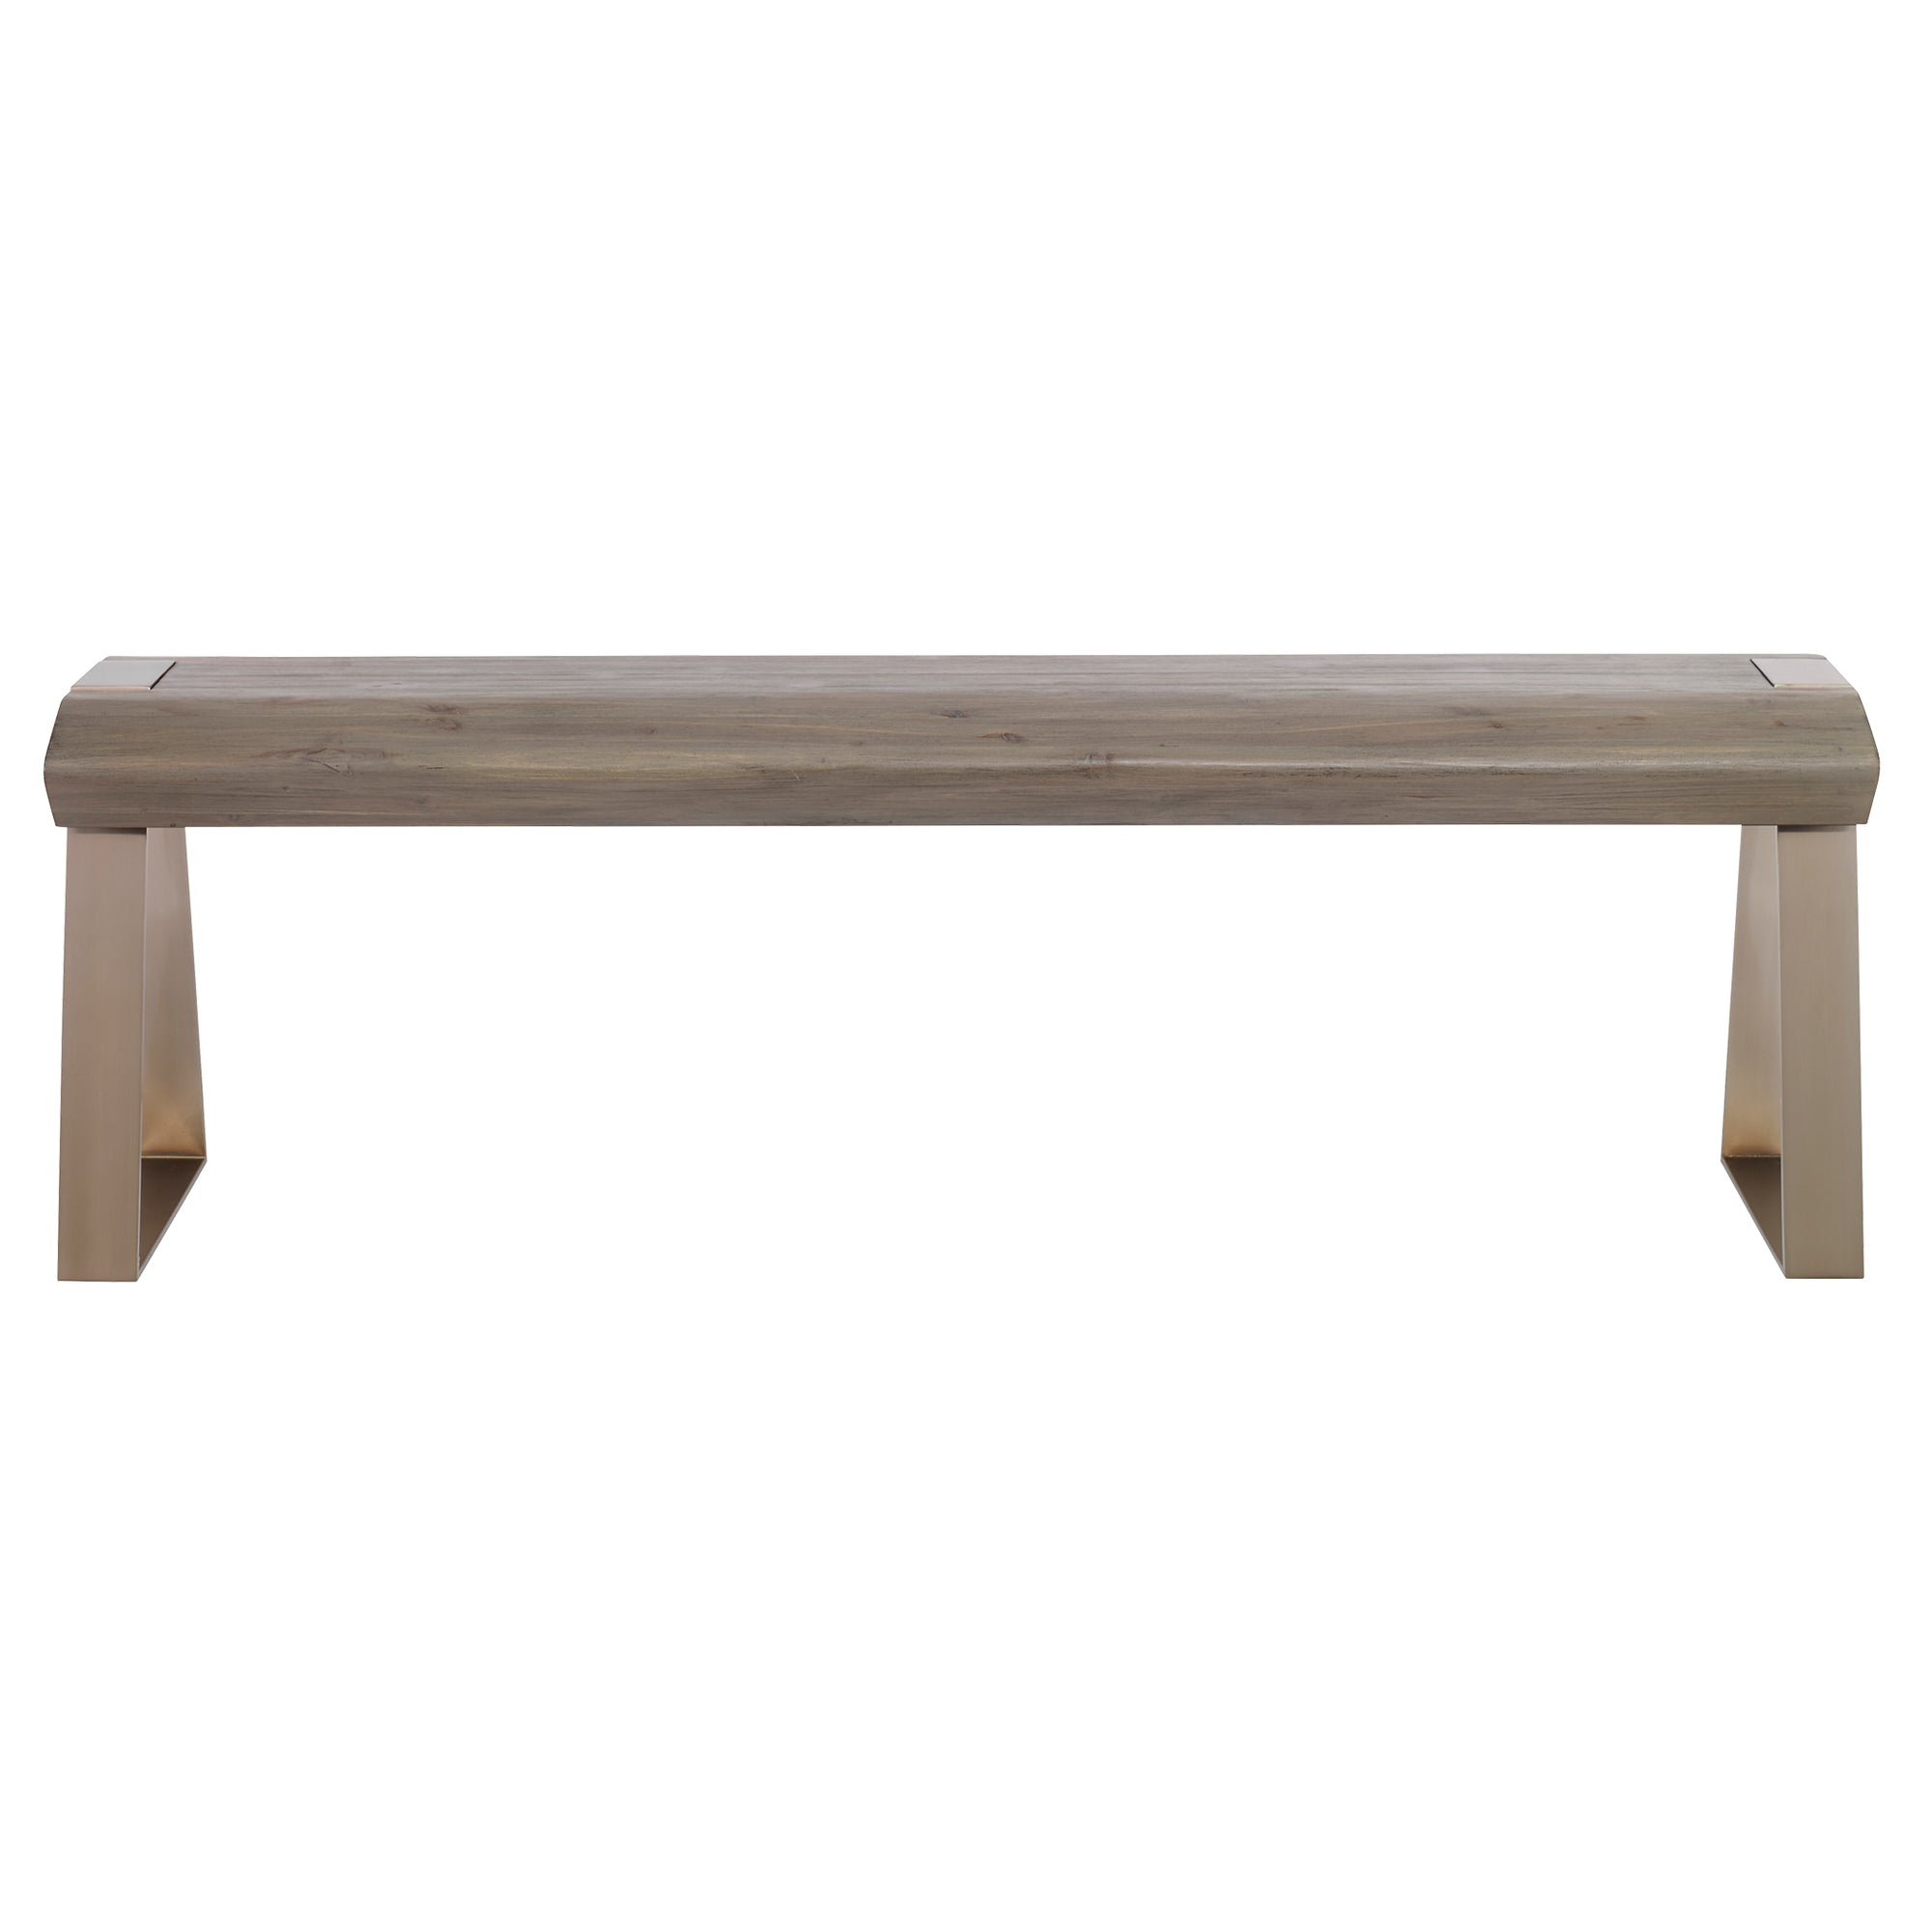 Acai Light Gray Bench